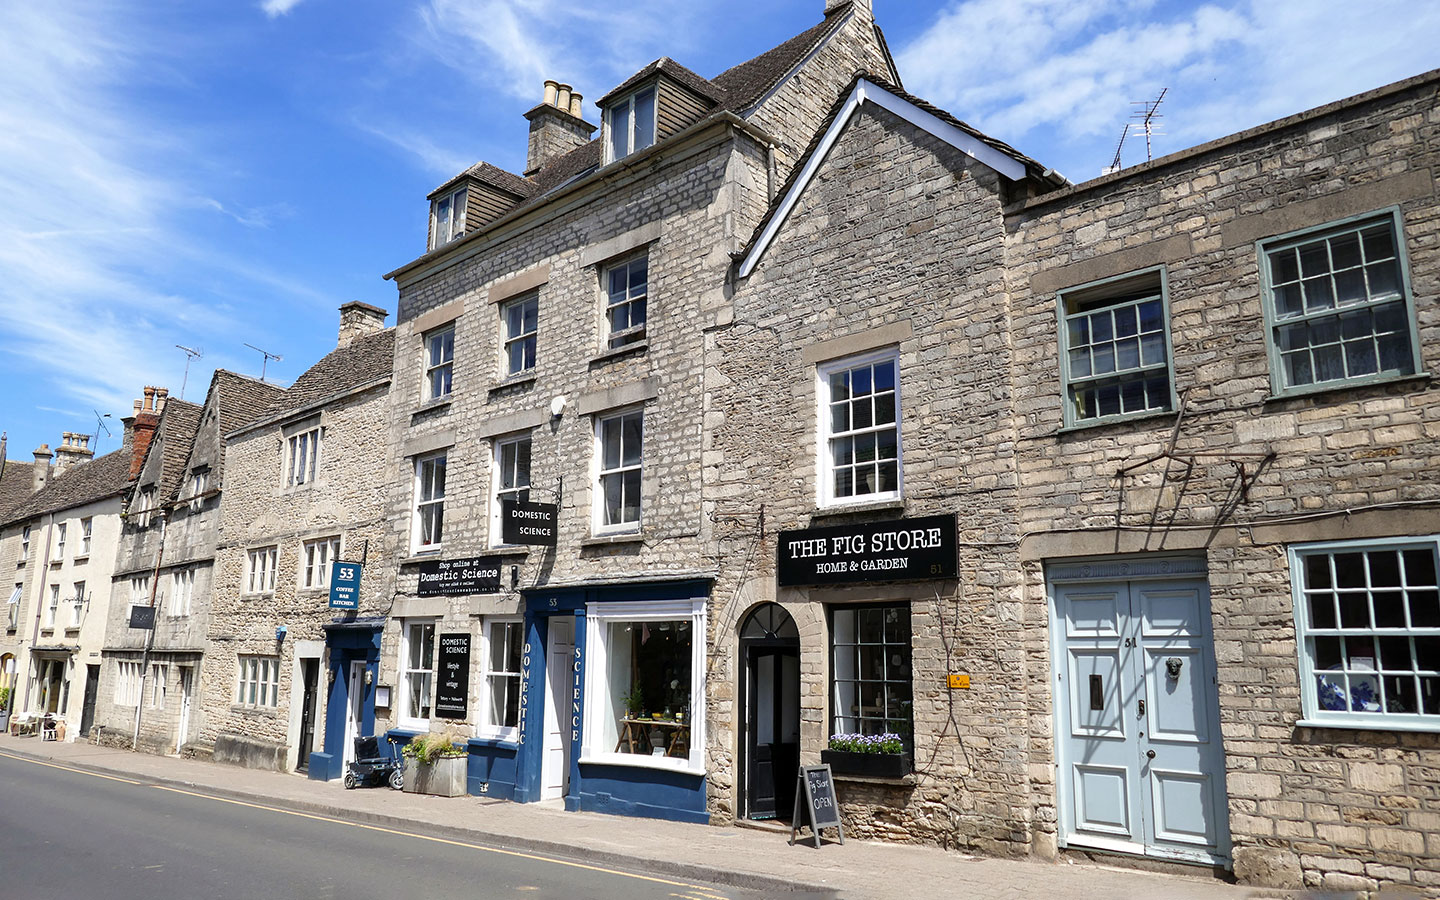 Domestic Science and Café 53 in Tetbury